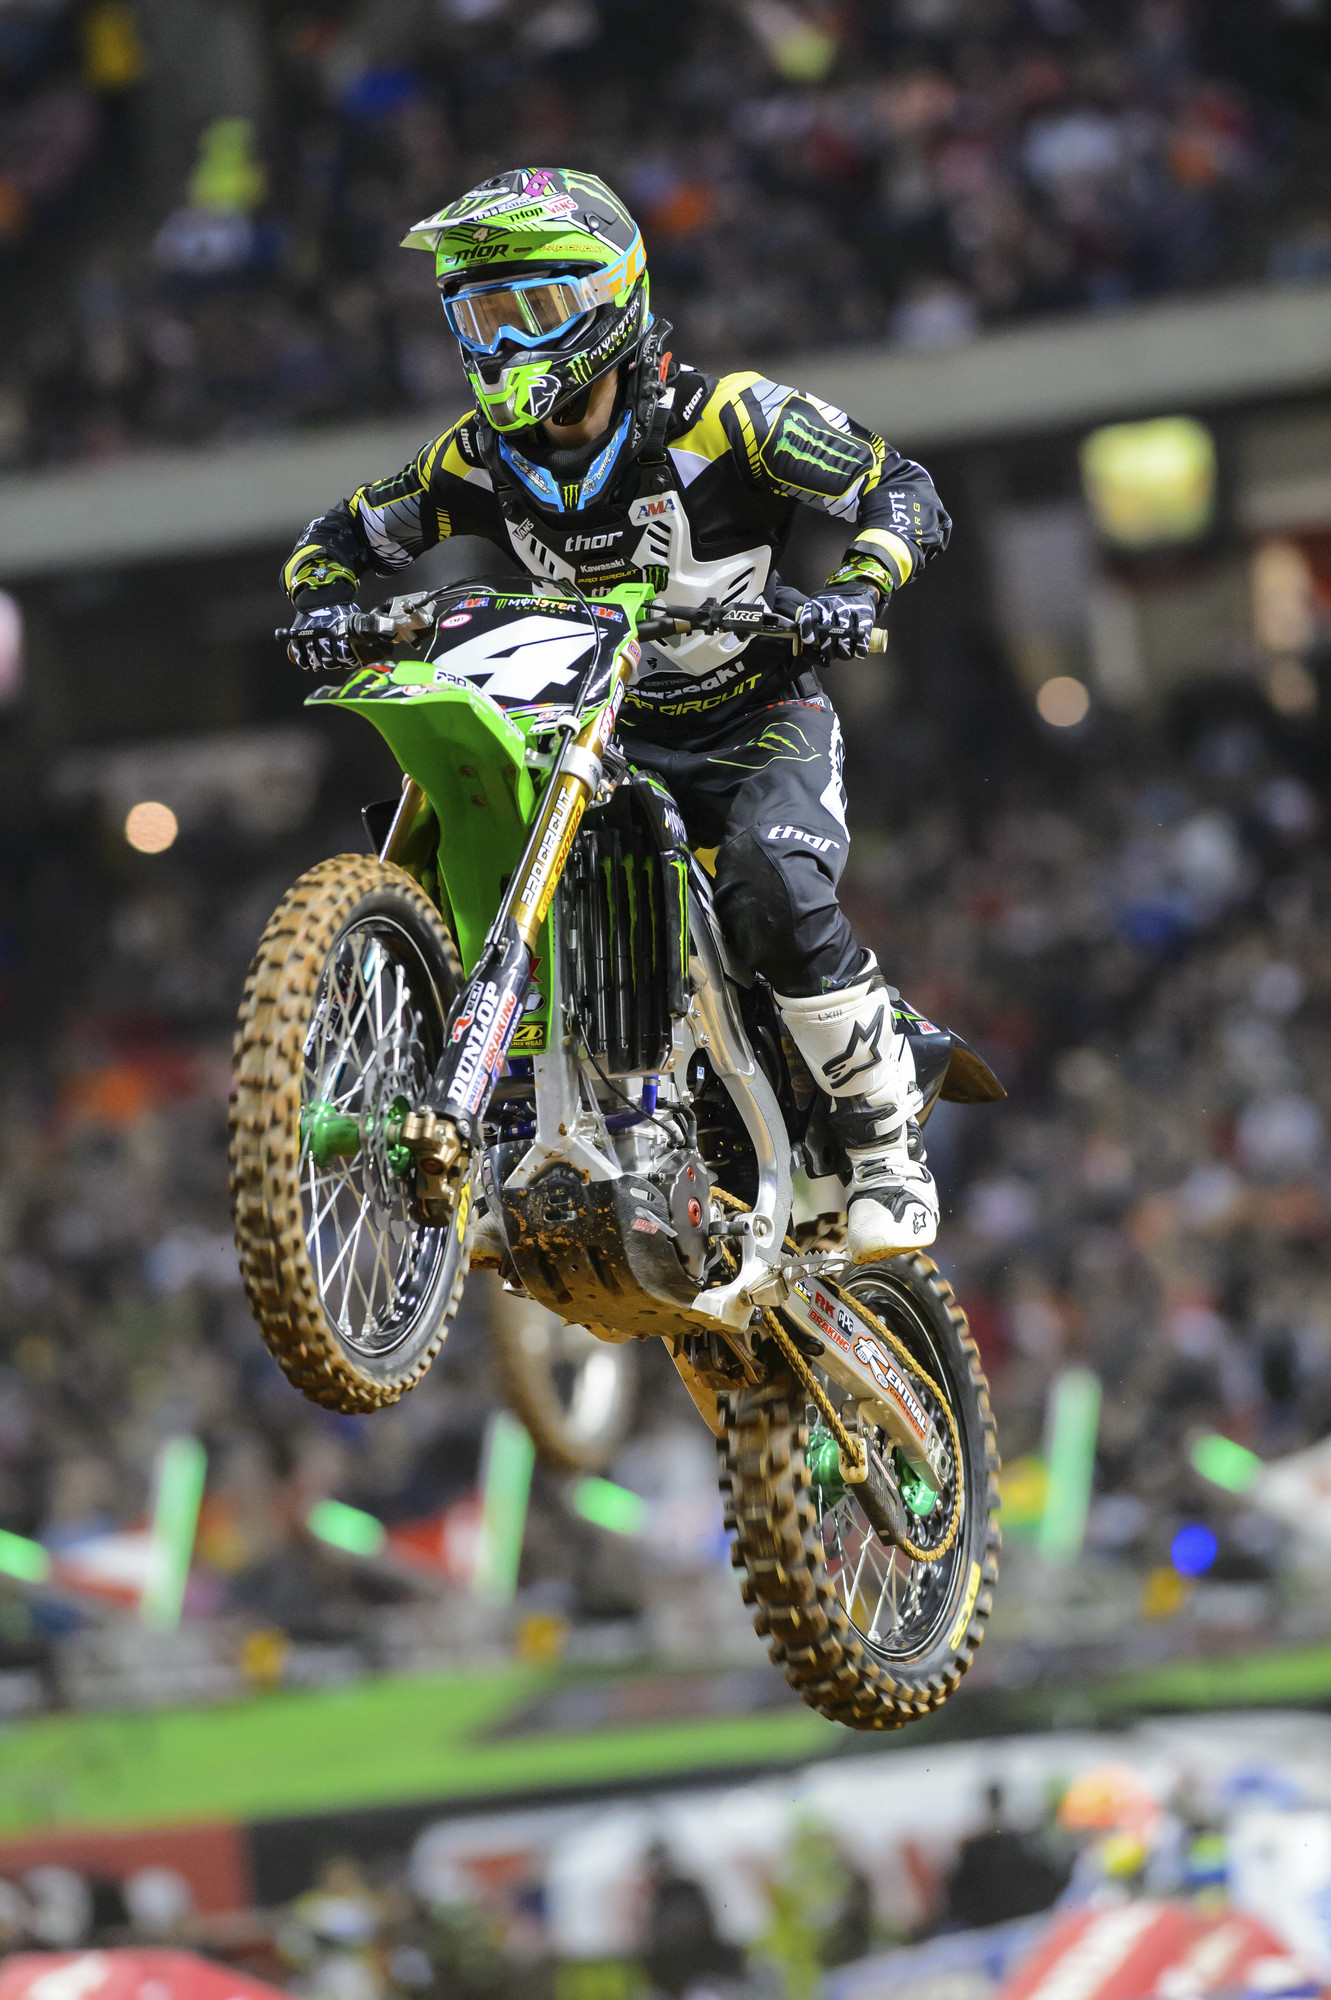 Baggett-AtlantaSX_News_2014_MOTOSPORTS_SCOTT Sports_EN.jpg